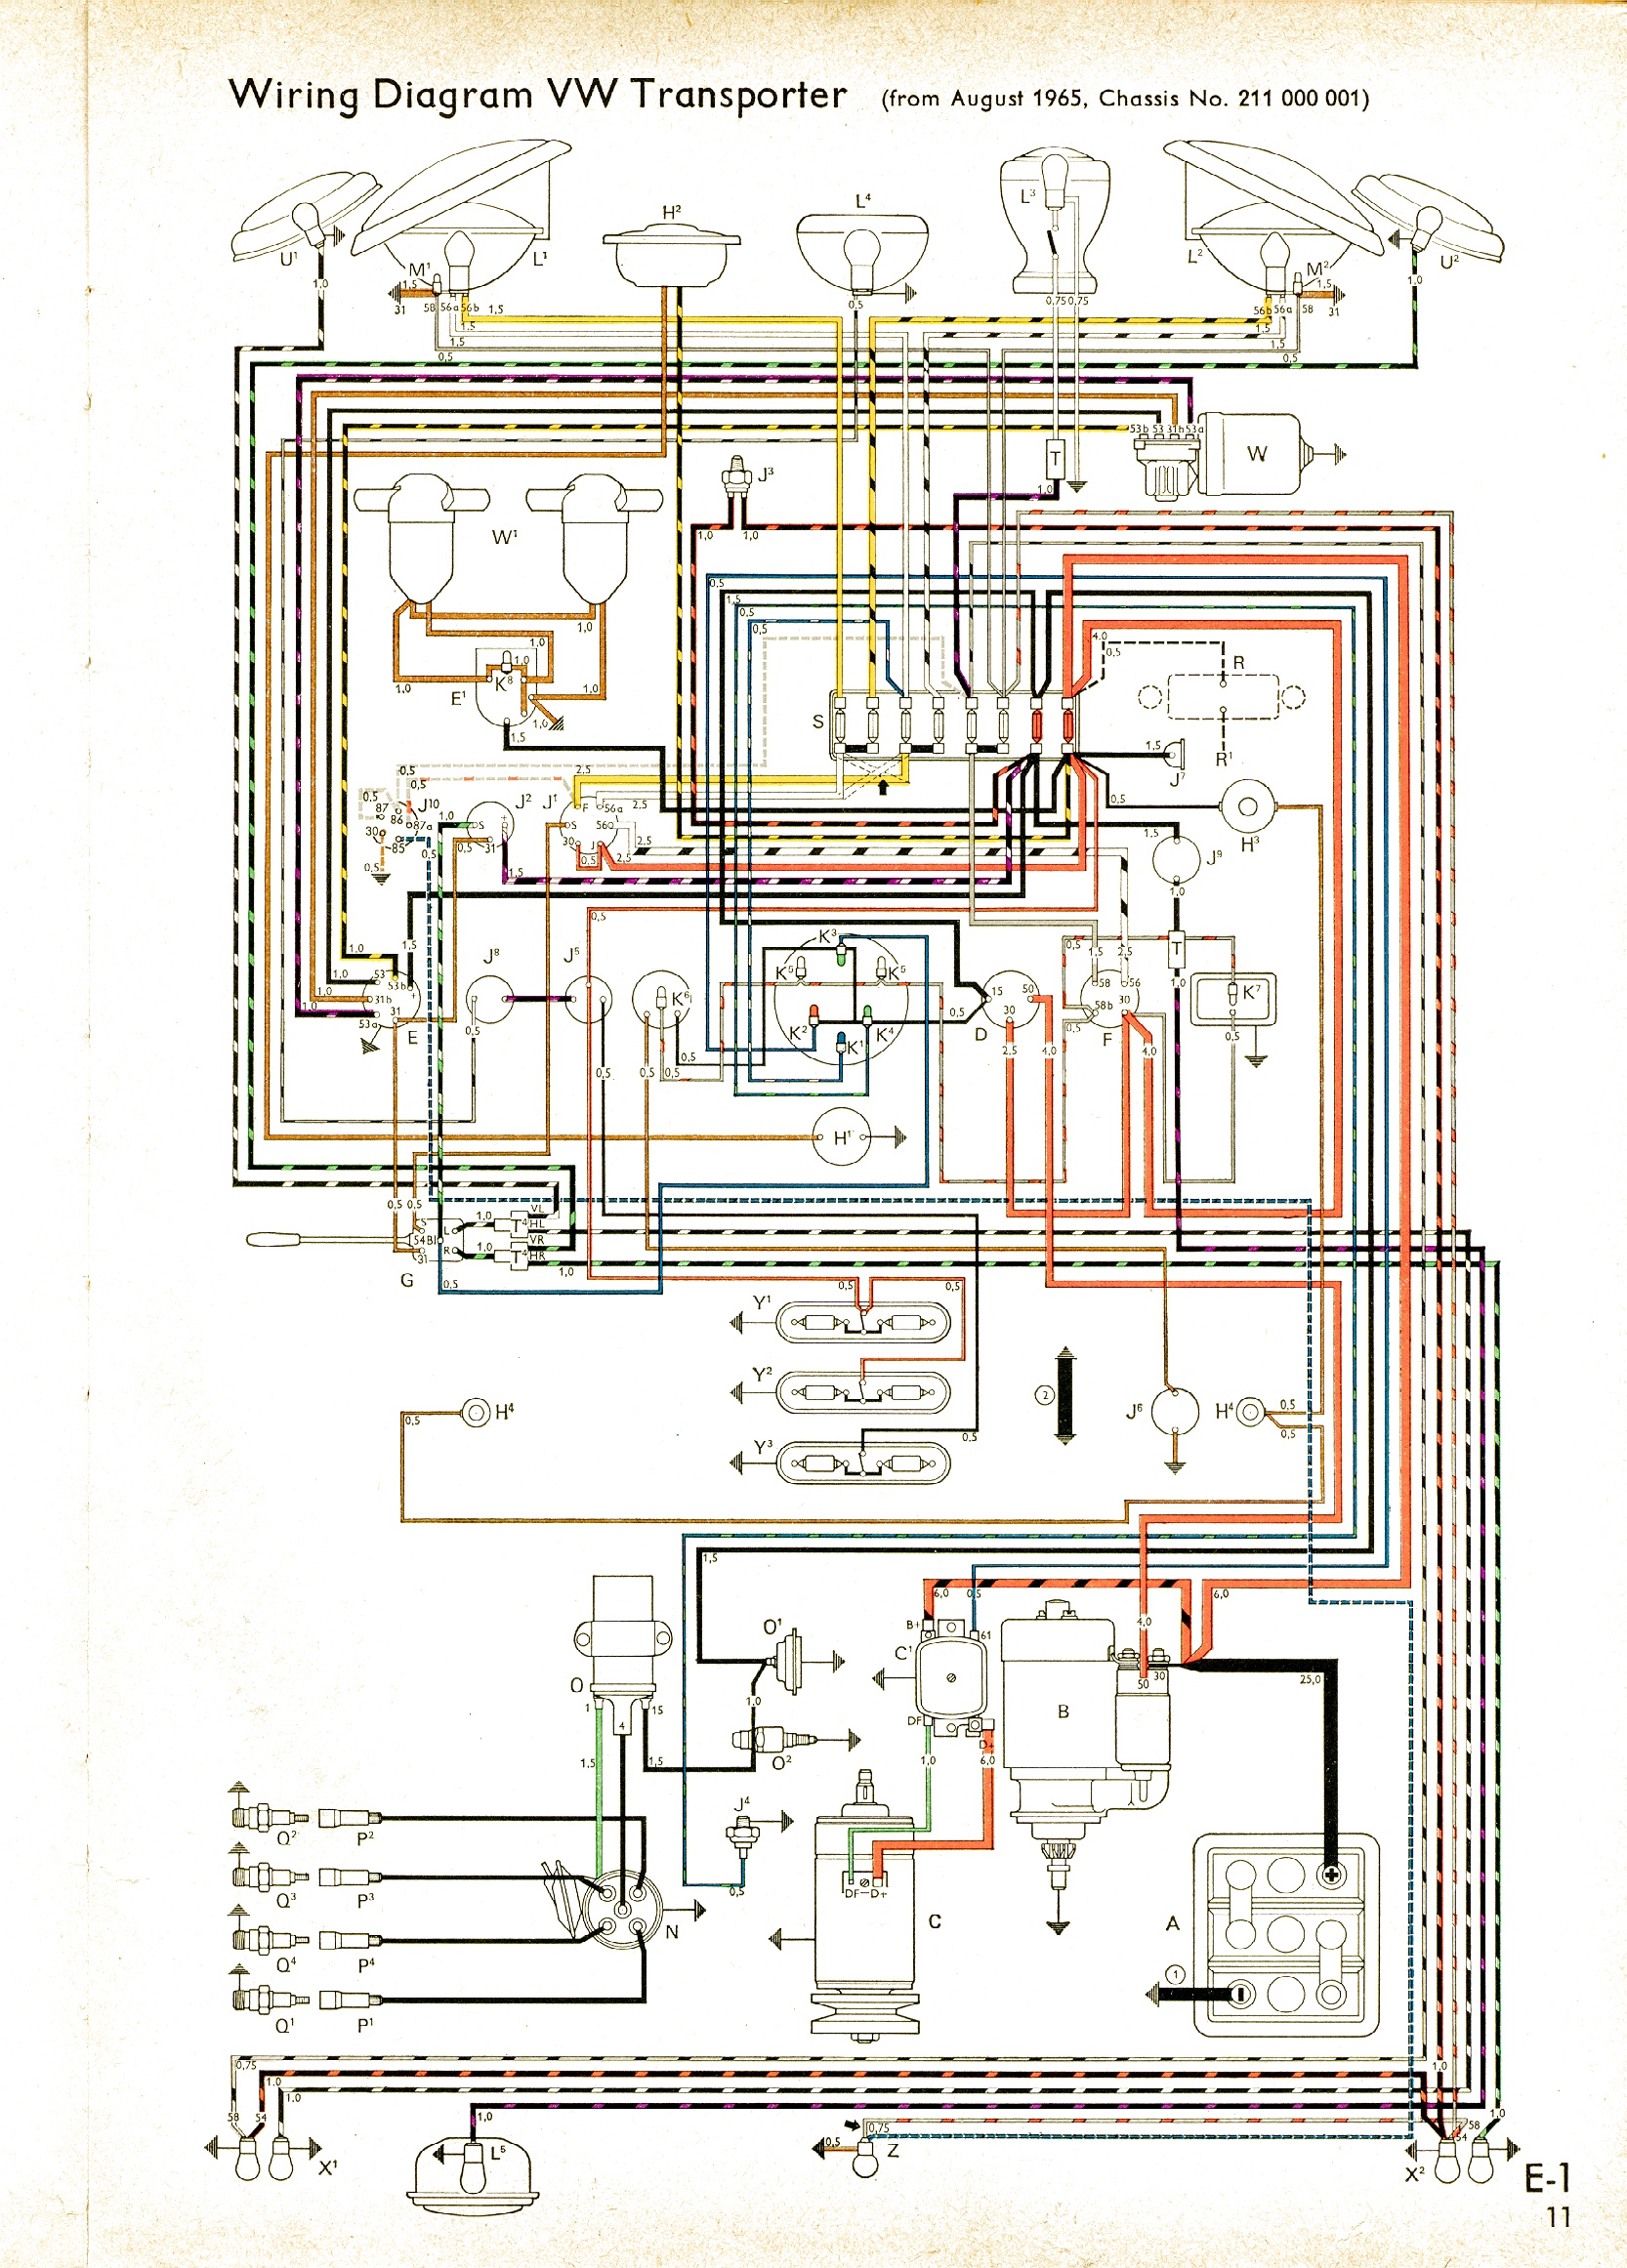 Volkswagen Metra Harness Wiring Diagram Library 1965 Barracuda Com Vw Bus And Other Diagrams